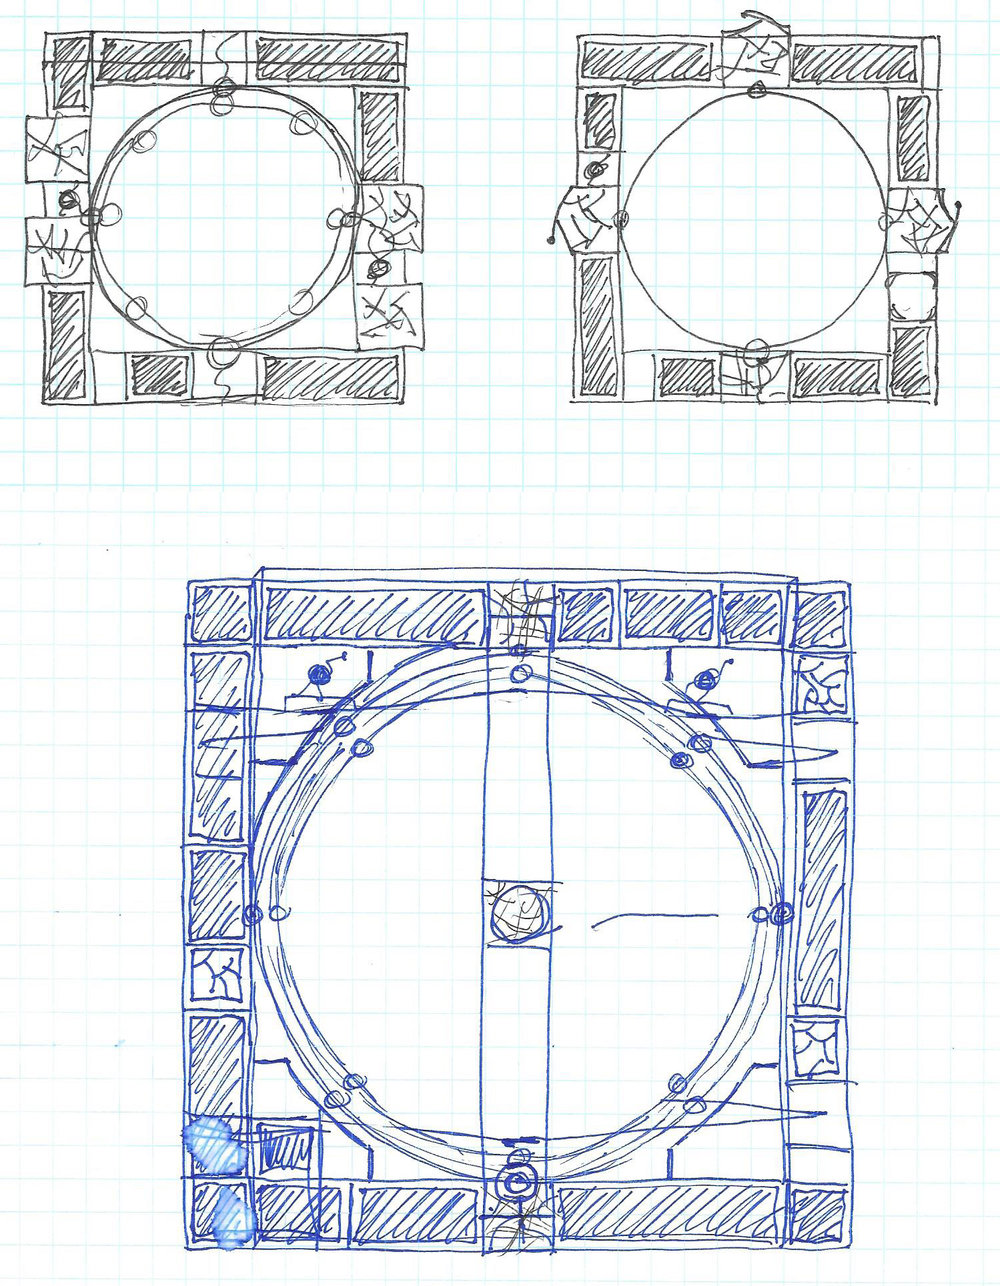 Early sketches - the design direction